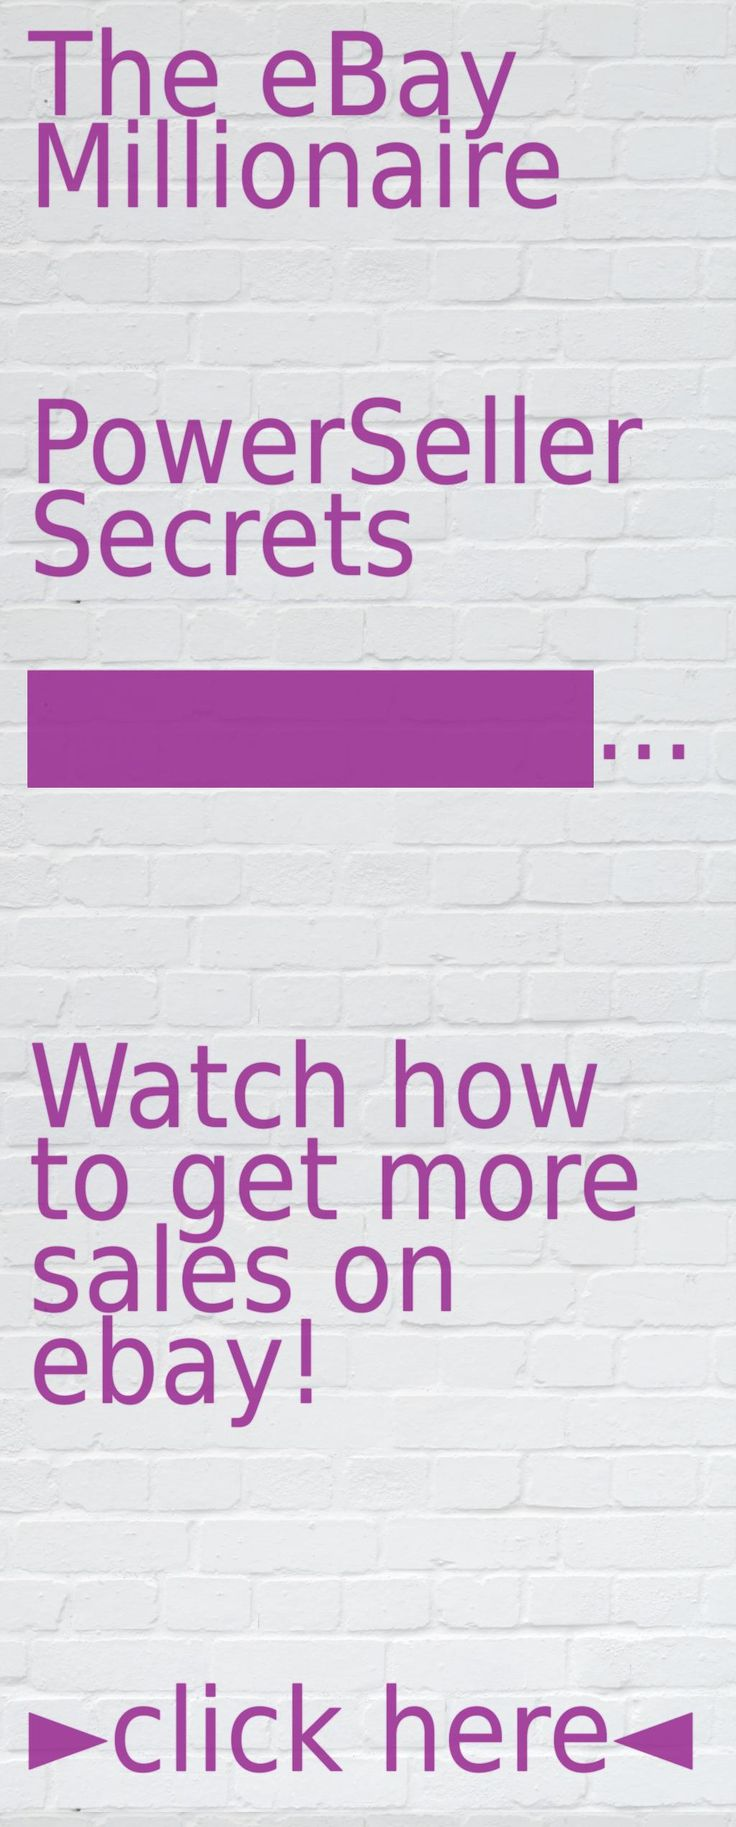 Learn secrets of ebay selling, get more exposure and sell more items thanks to this simple method: https://www.youtube.com/watch?v=-KcxwcDFfN8